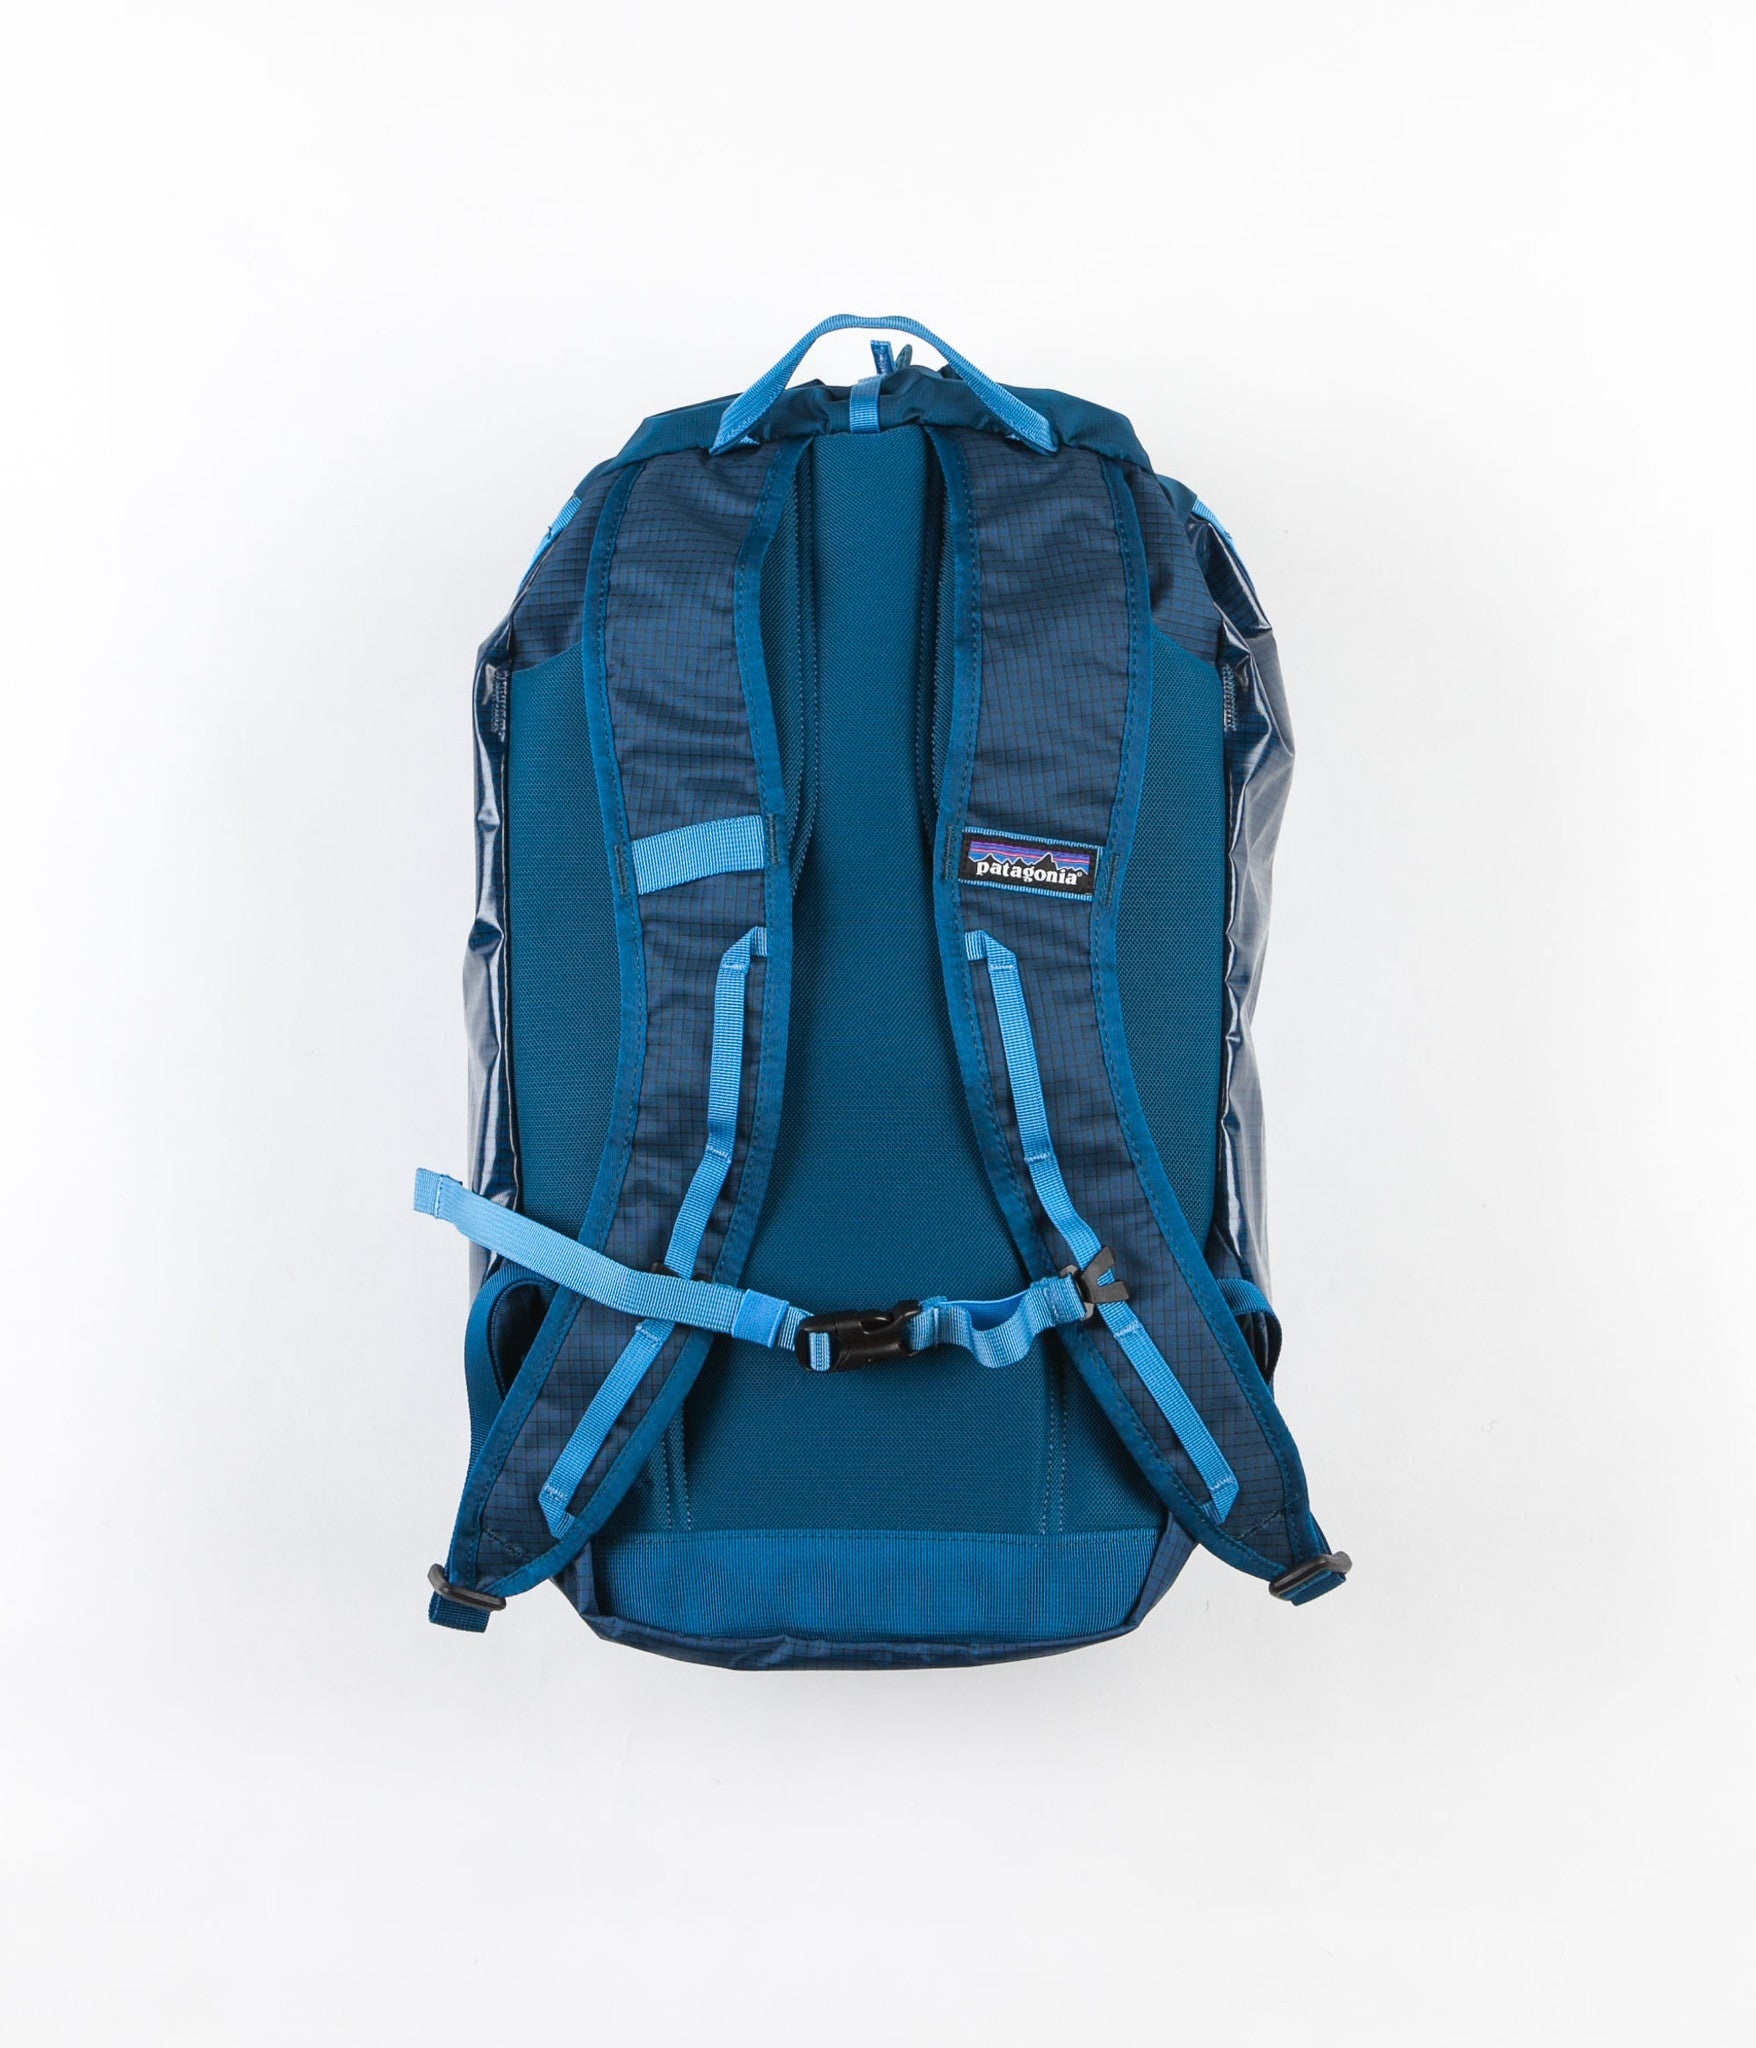 Patagonia Lightweight Black Hole Cinch Bag - Big Sur Blue